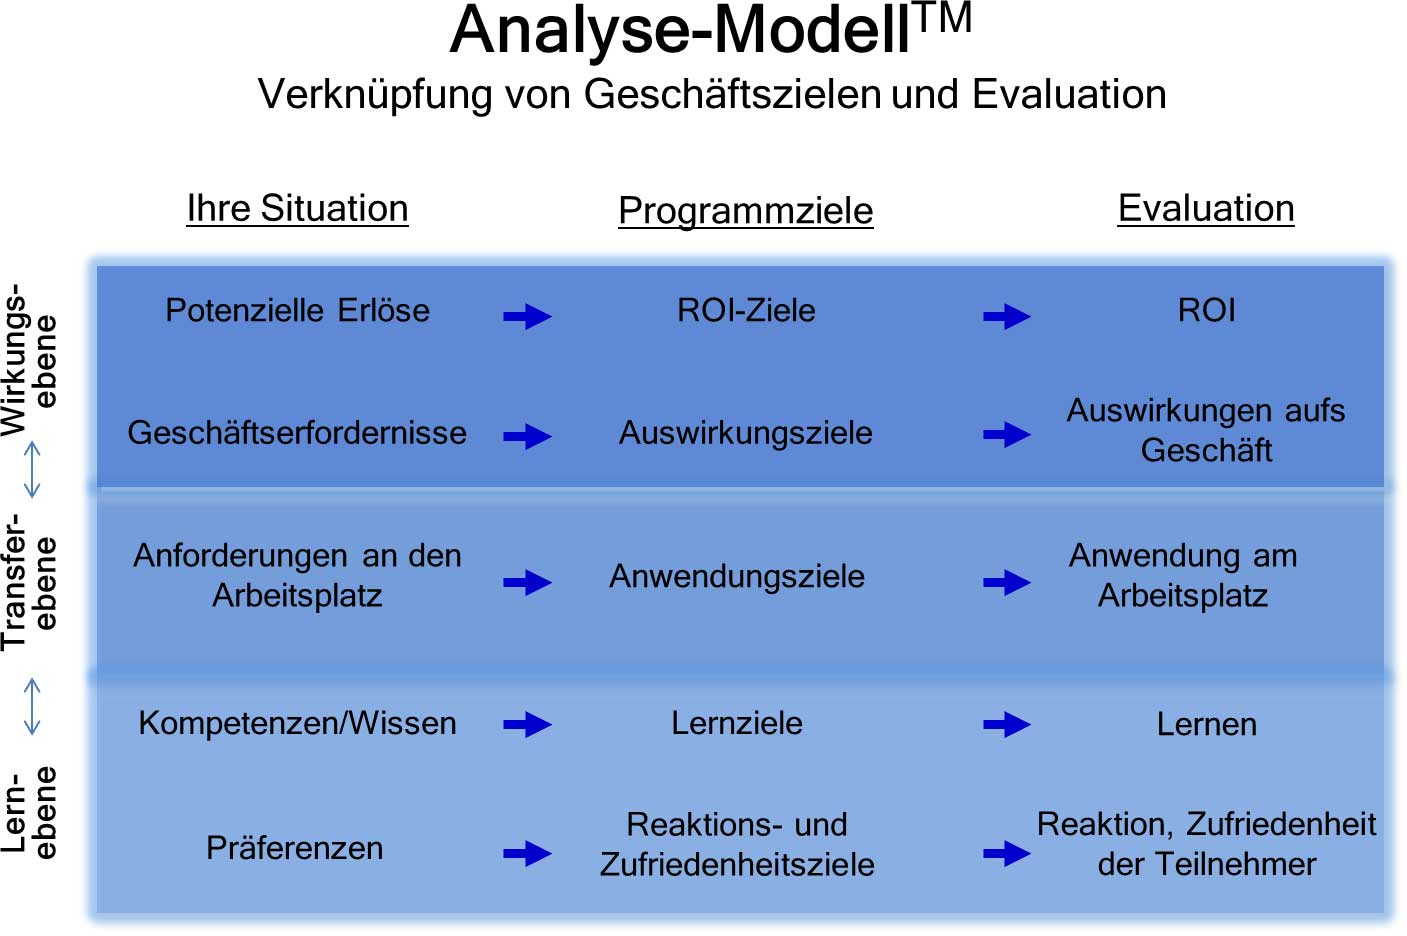 Analyse-Modell